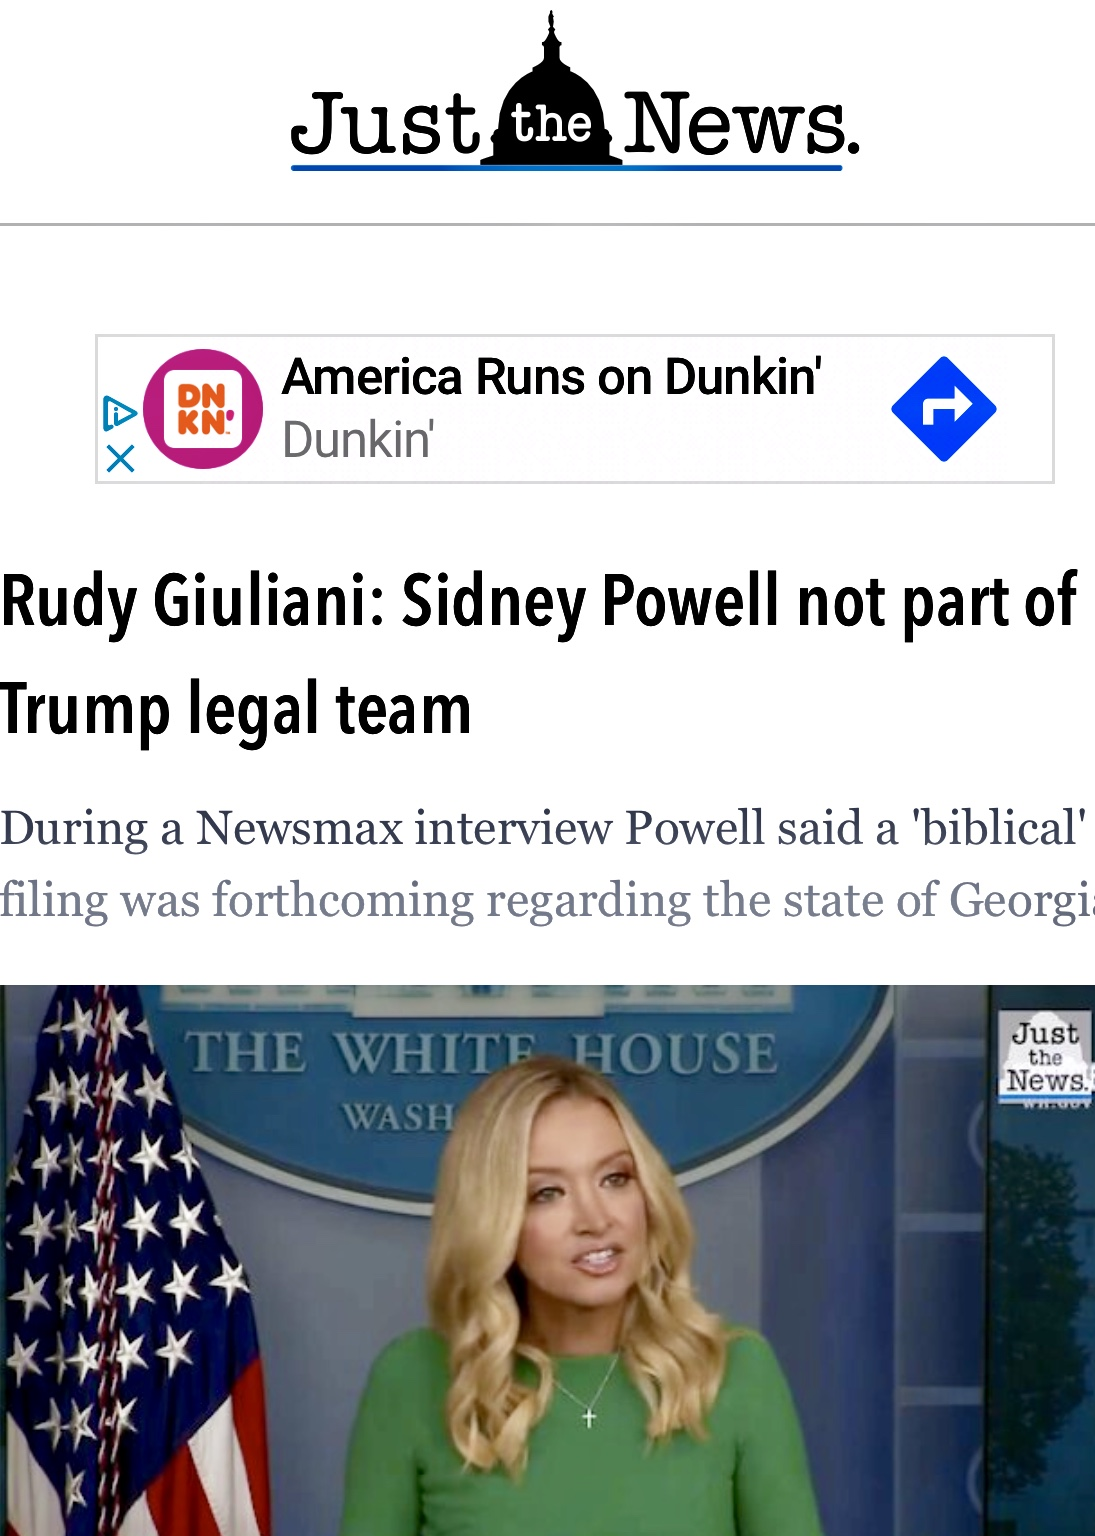 Rudy Giuliani: Sidney Powell not part of Trump legal team